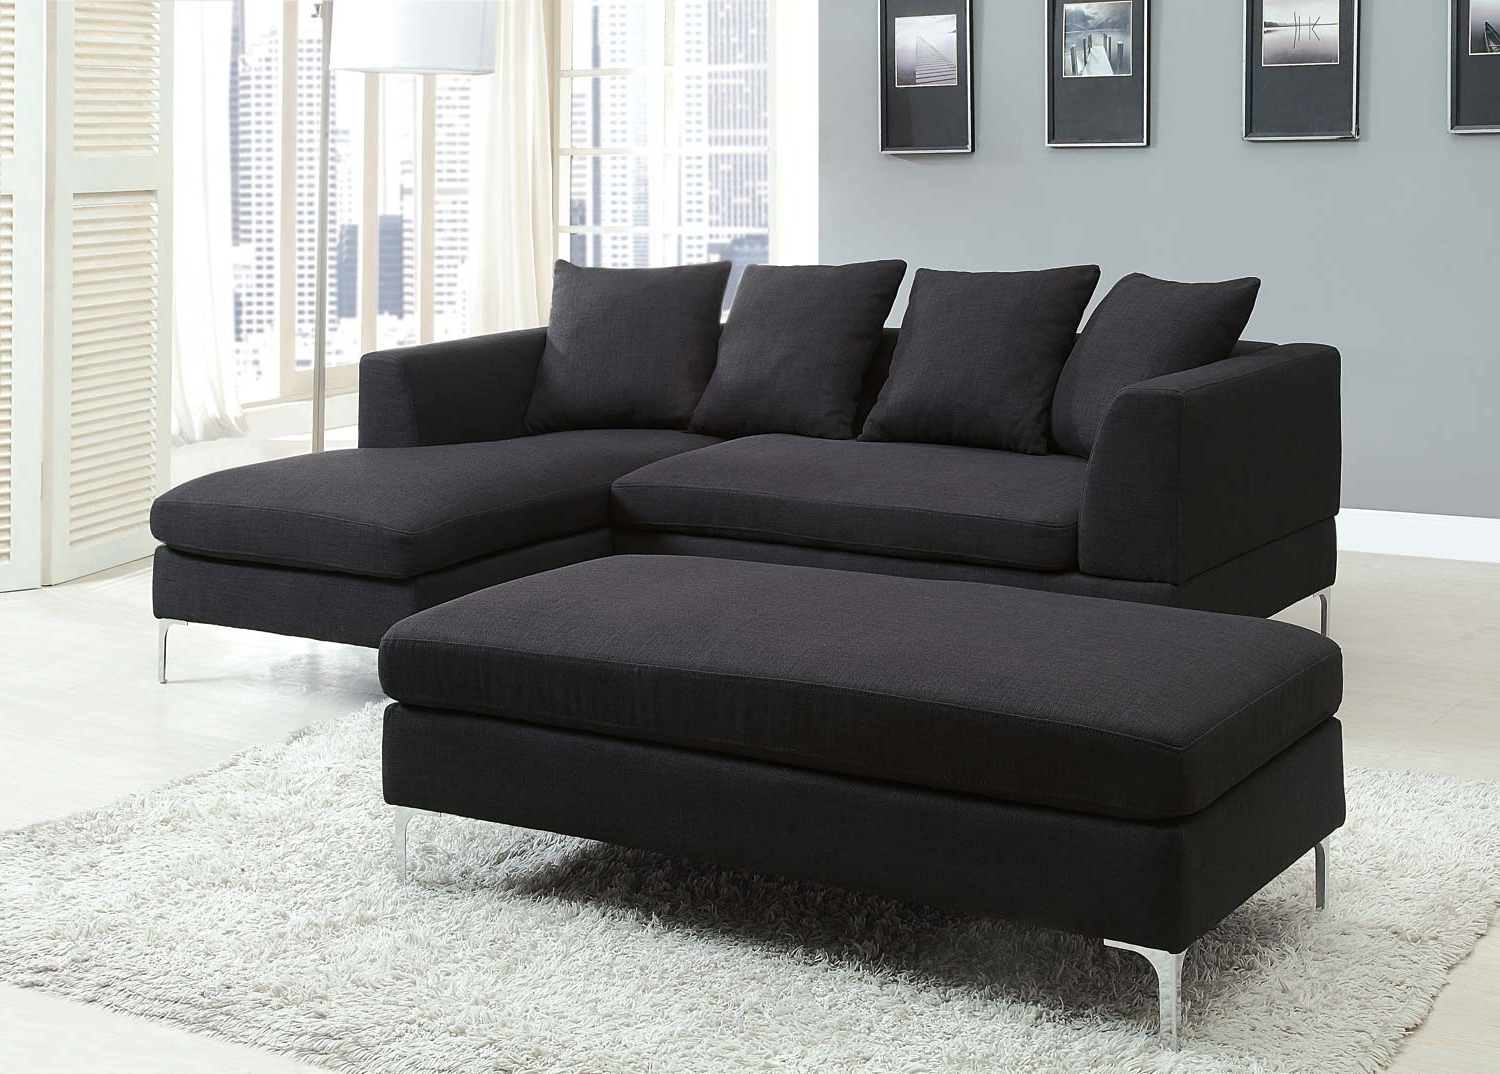 Black Sectional Sofas Regarding Most Recent Black Sectional Couch Cheap — Radionigerialagos (Gallery 7 of 20)